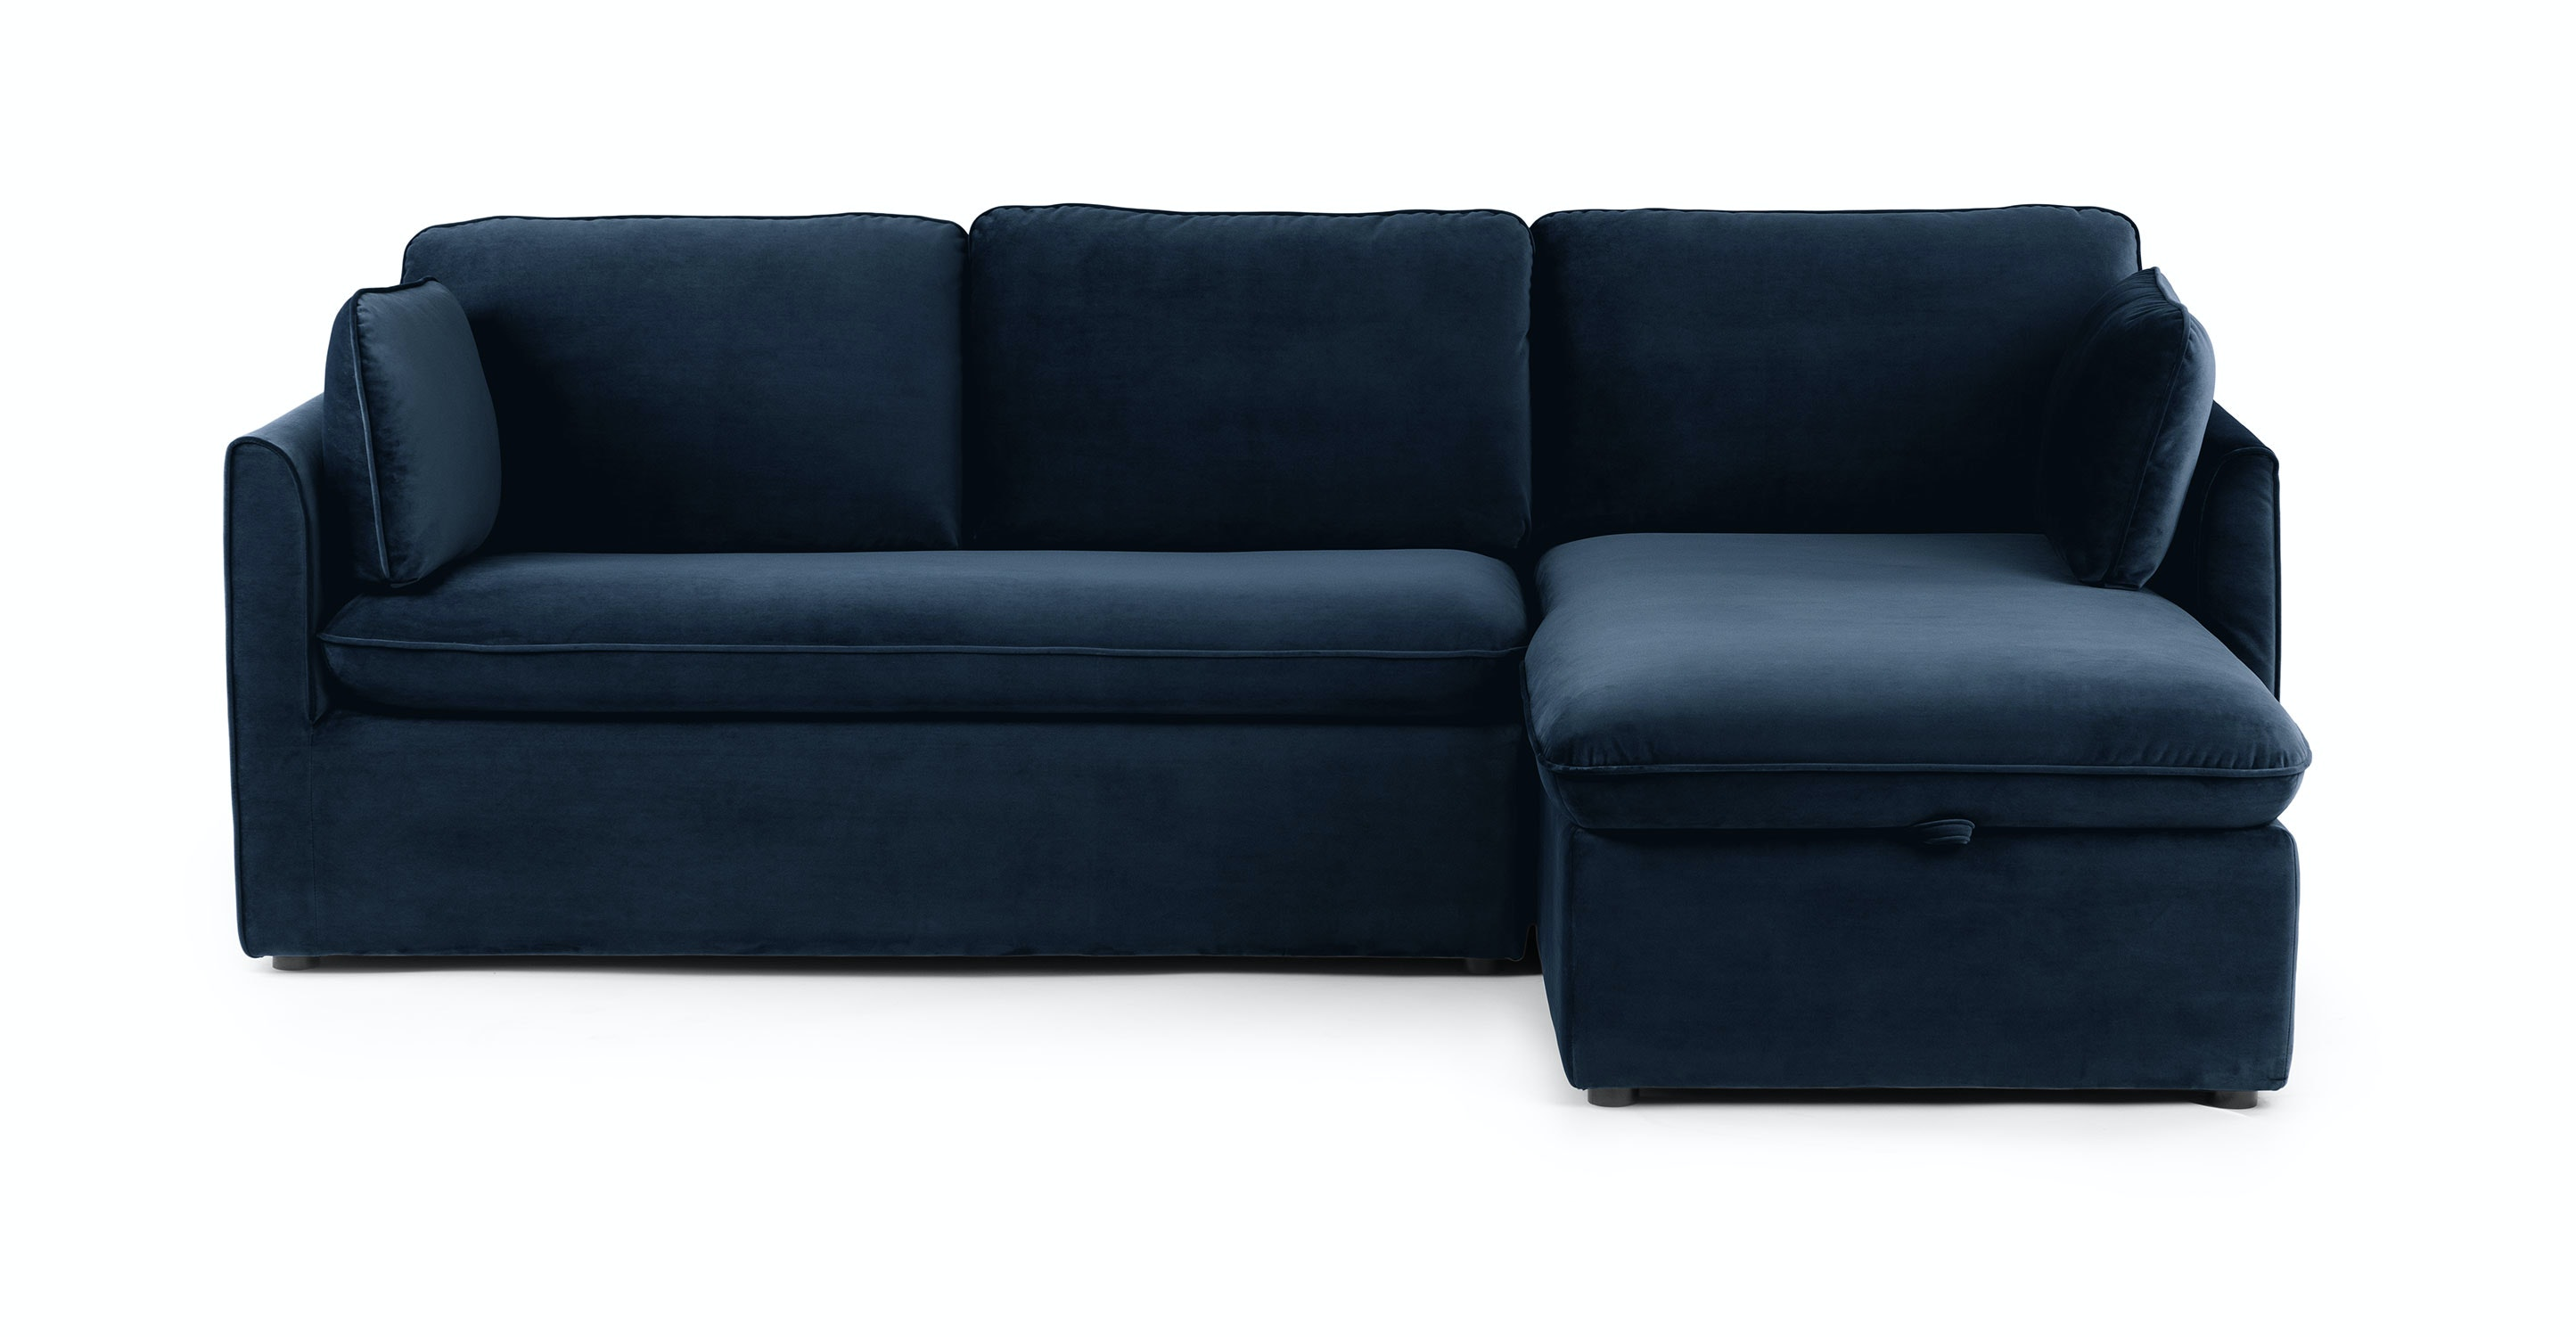 Sofa Beds Mississauga Ontario | Review Home Co